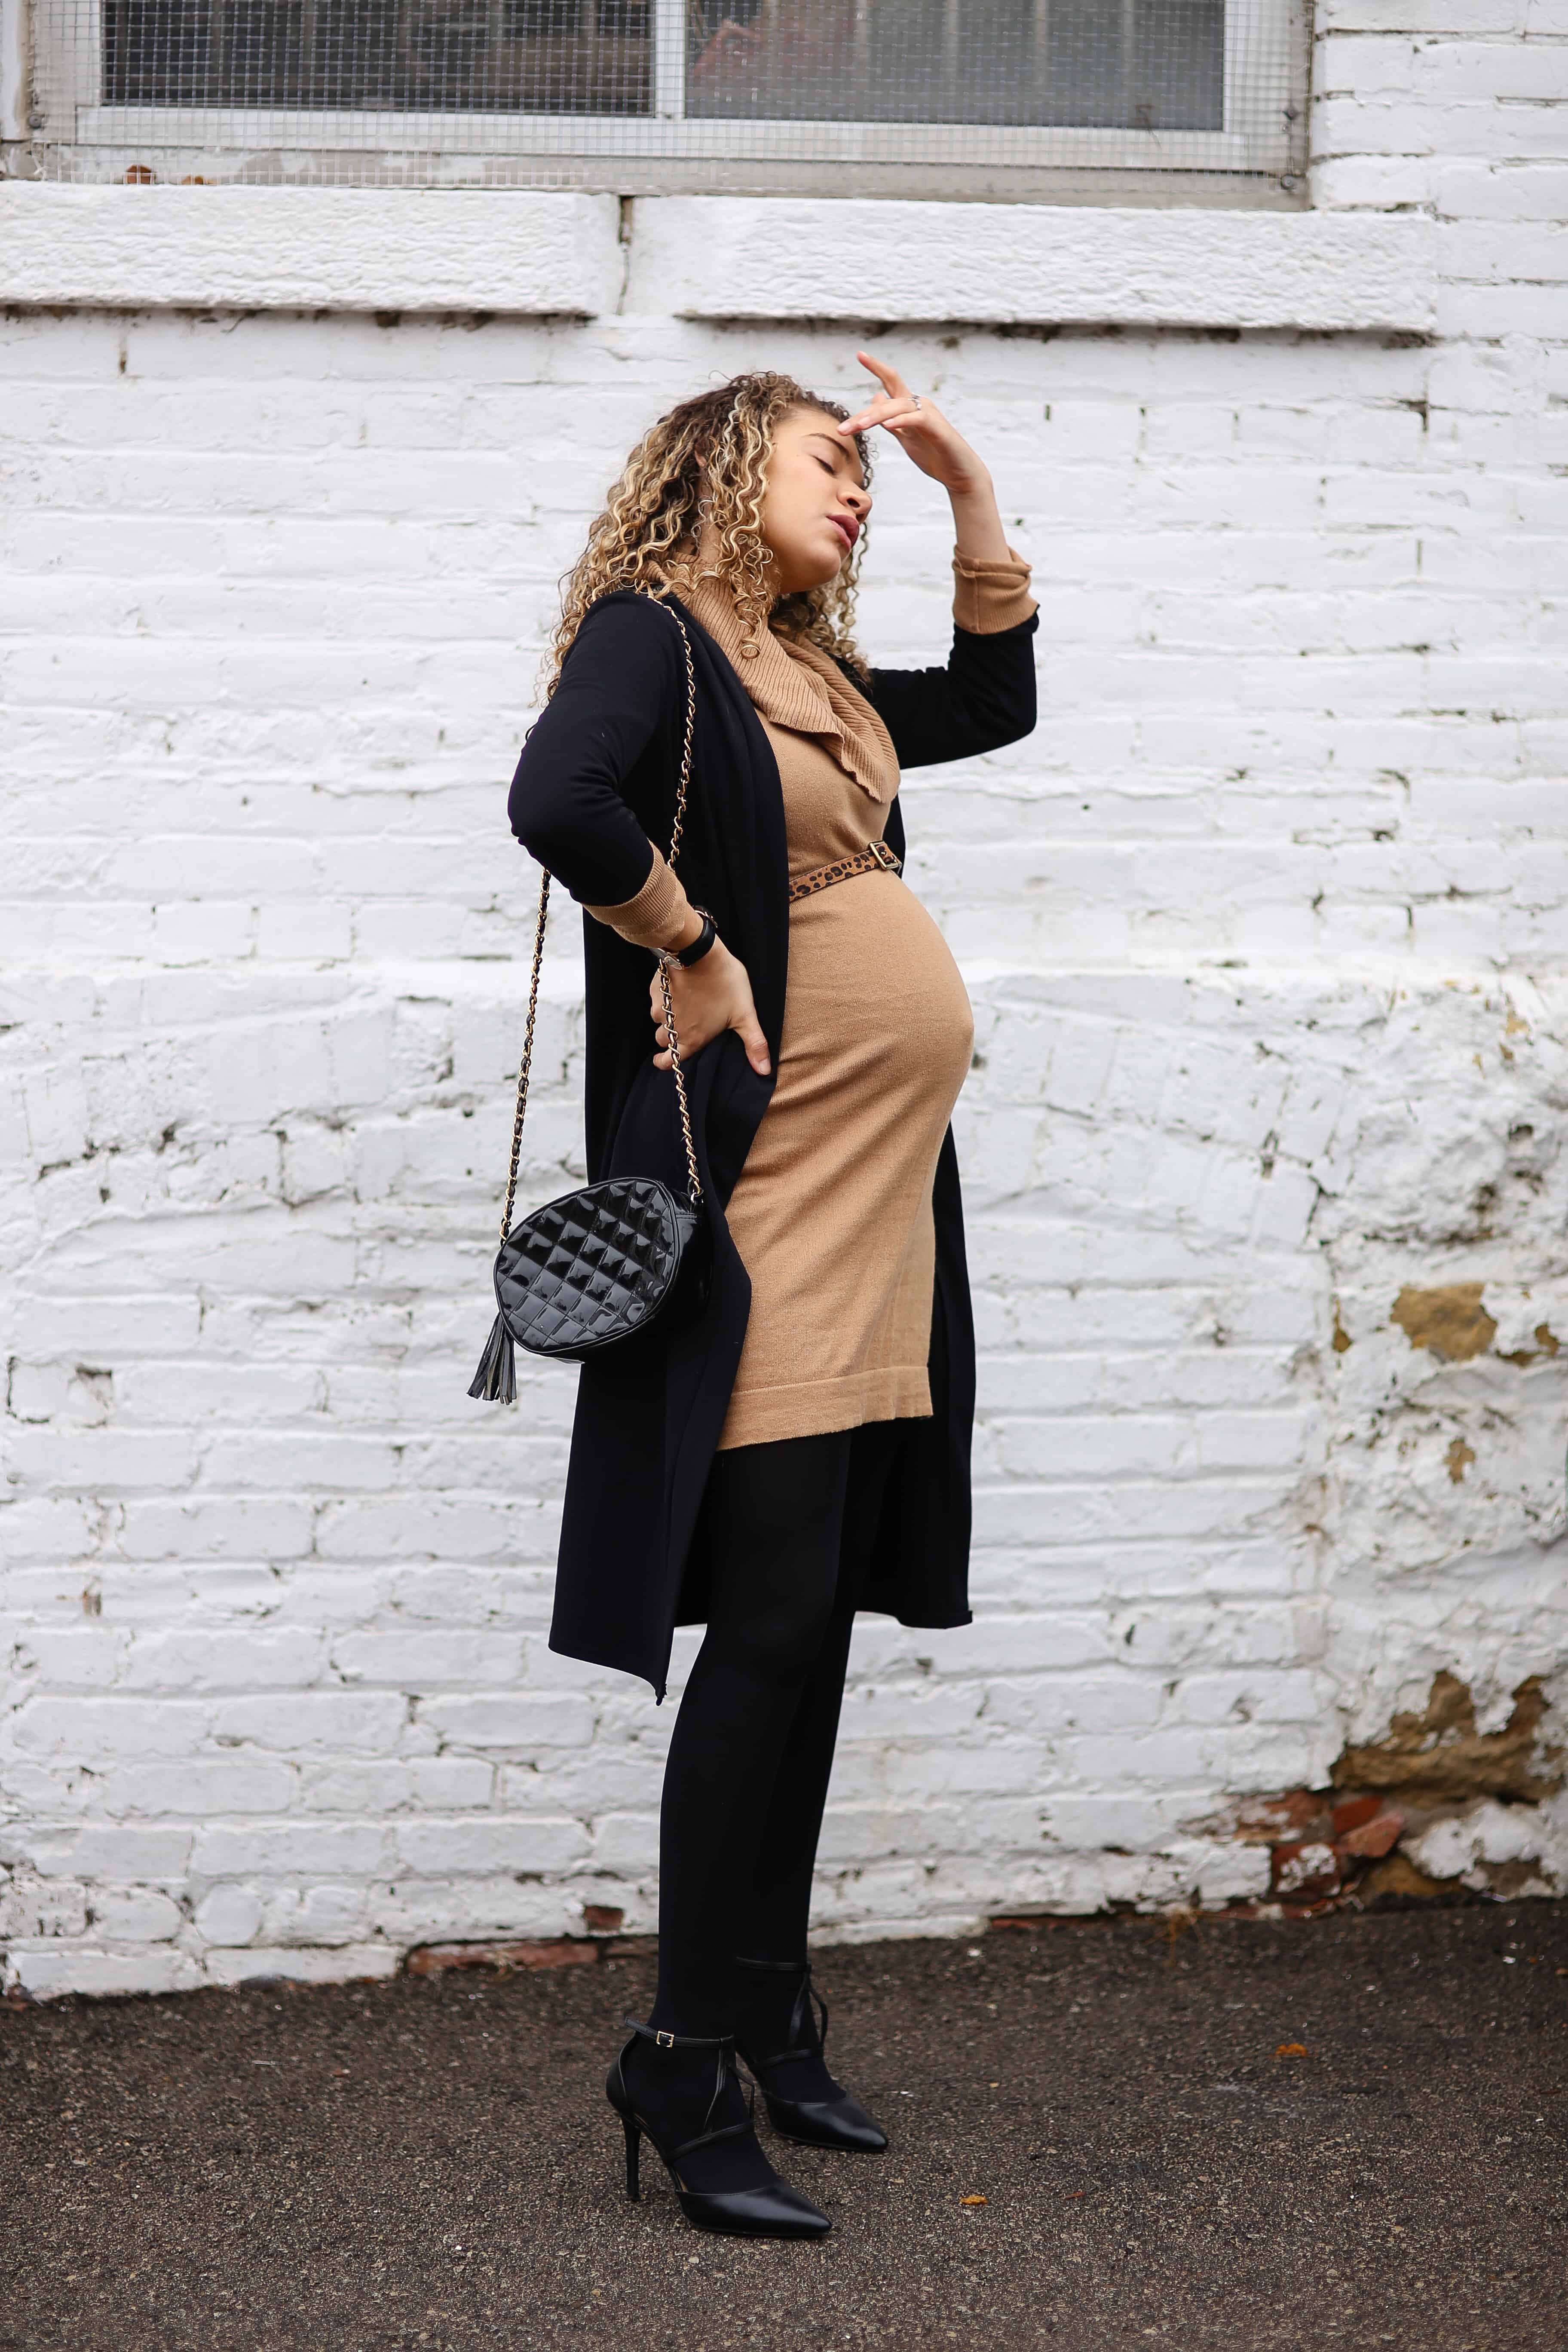 2e177c8630d89 12 Winter Maternity Outfit Ideas | Maternity Fashion - MY CHIC OBSESSION